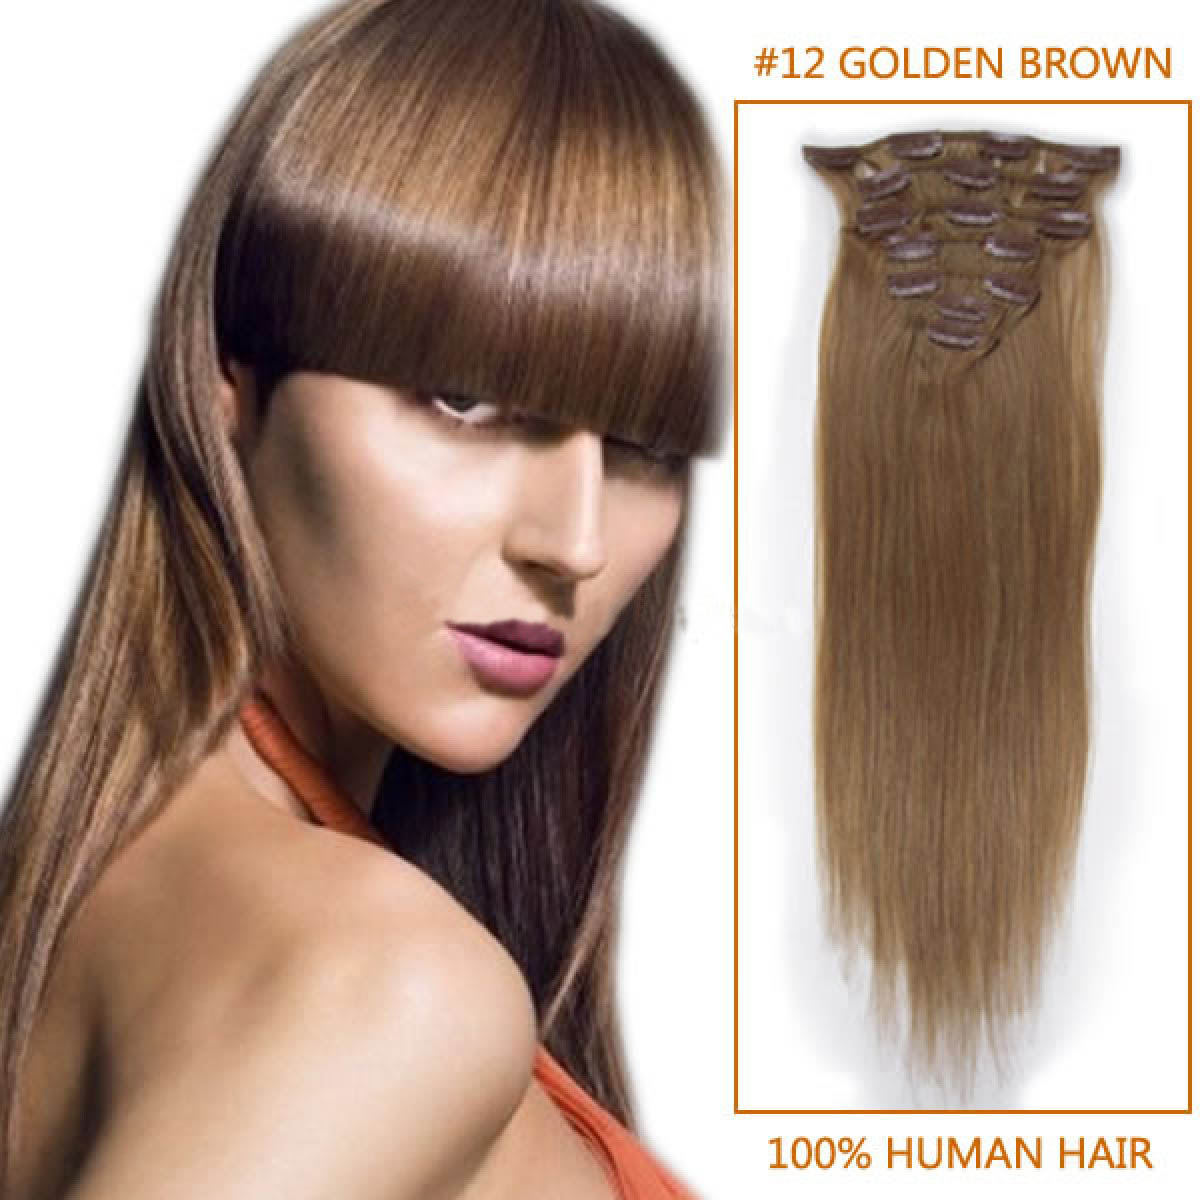 Inch 12 golden brown clip in remy human hair extensions 9pcs 24 inch 12 golden brown clip in remy human hair extensions 9pcs pmusecretfo Image collections